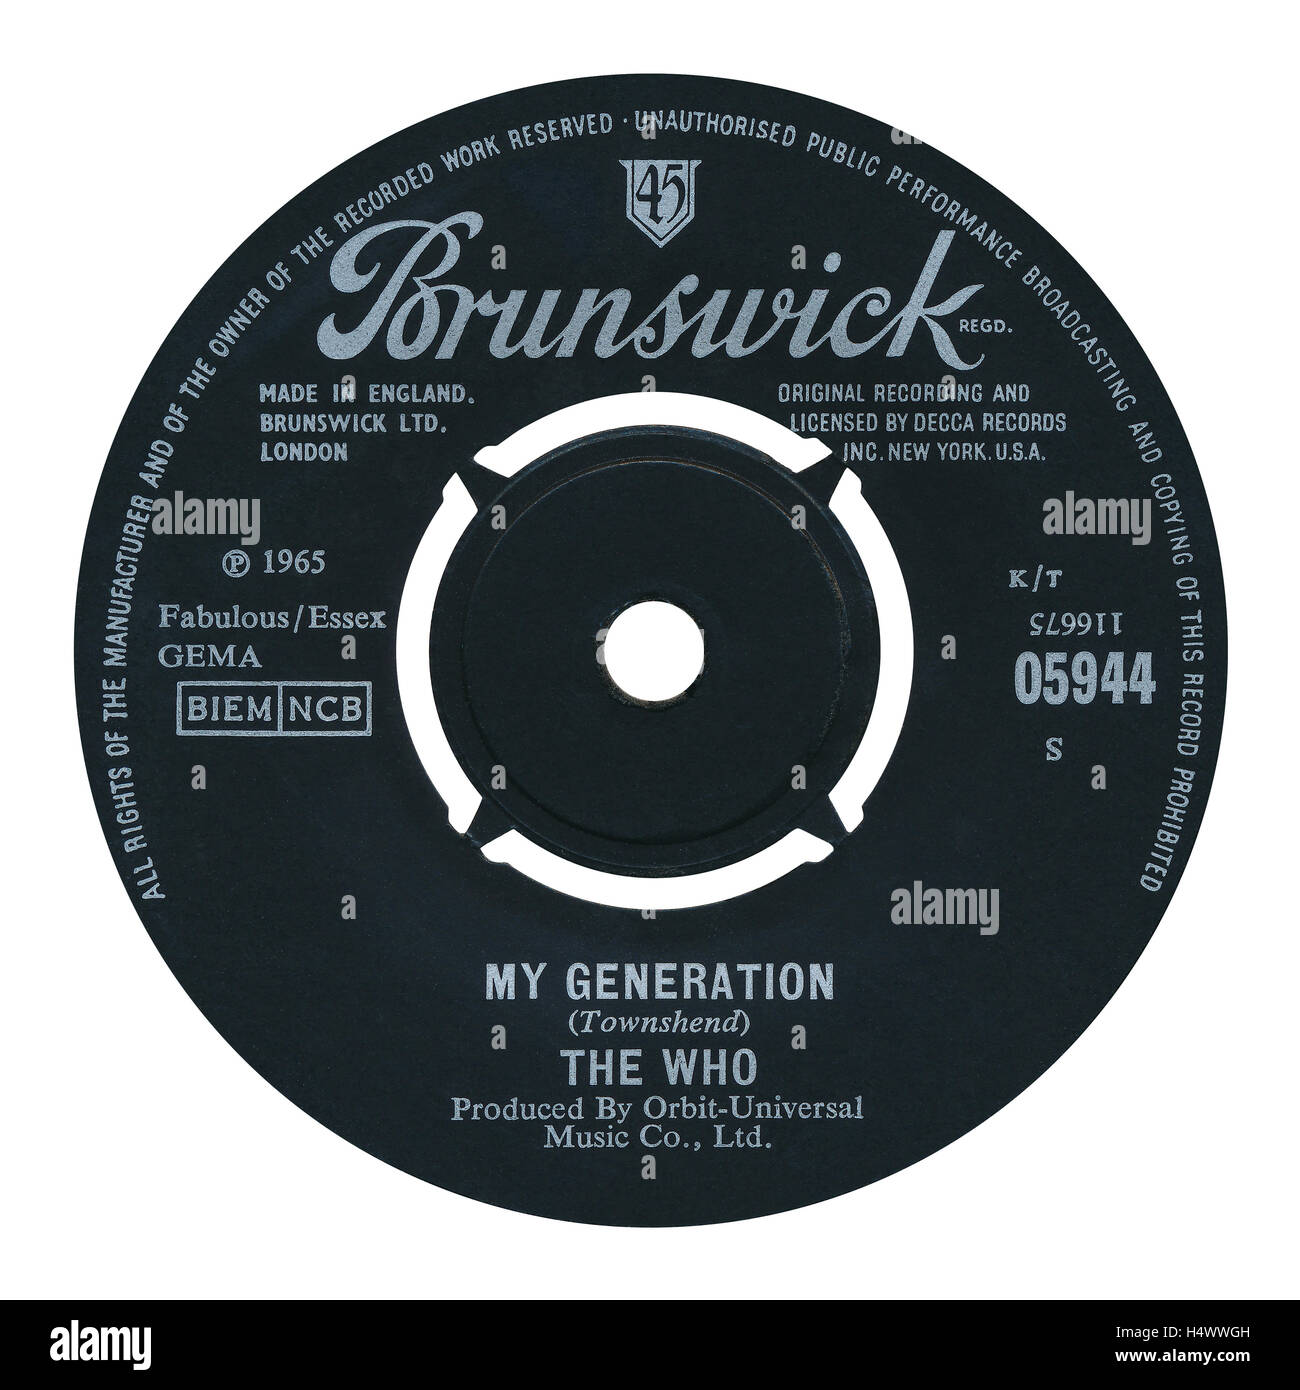 45 RPM 7' UK record label of My Generation by The Who on the Brunswick label from 1965 - Stock Image